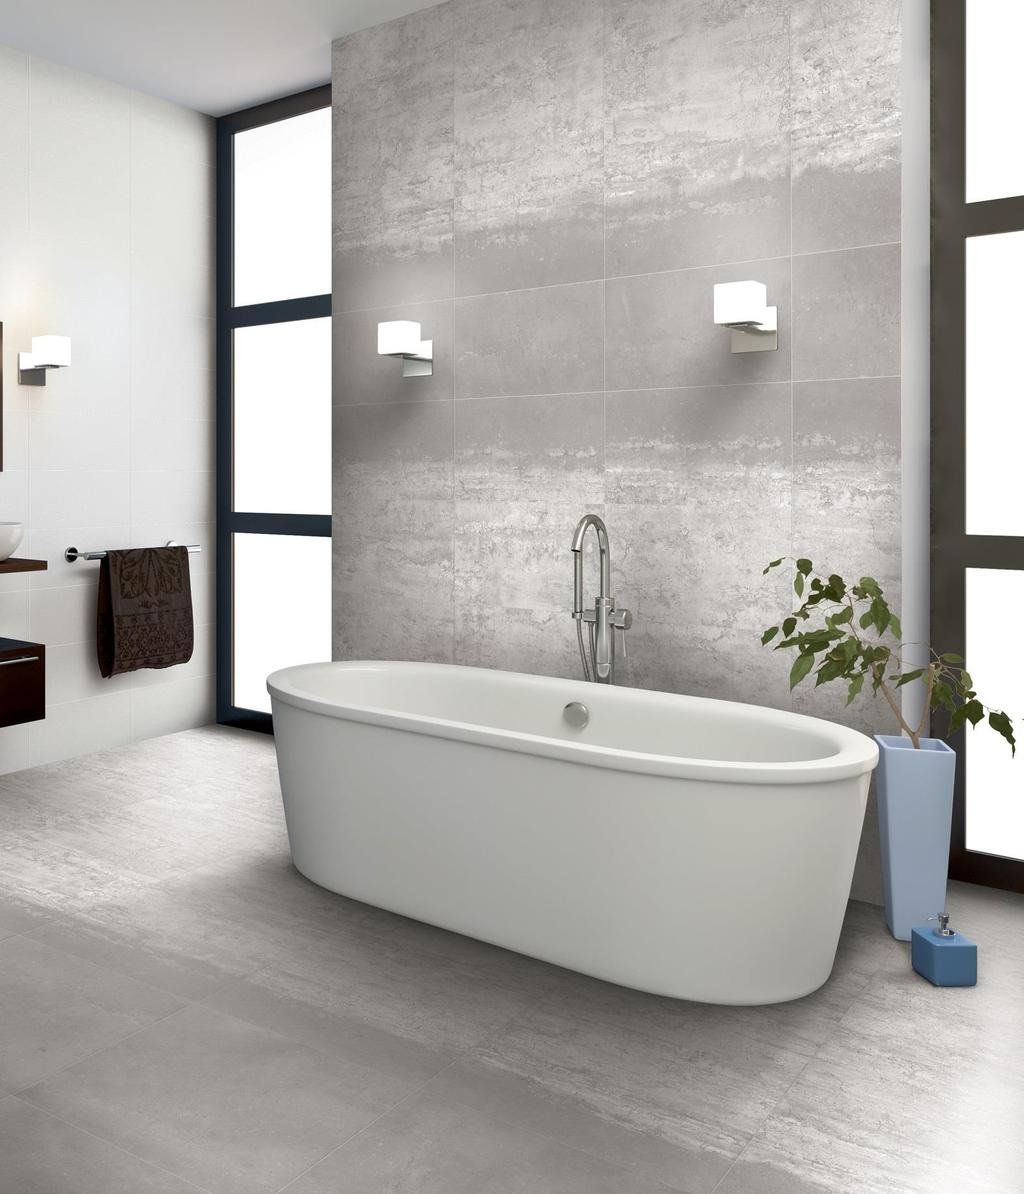 "STONEWAY PORCELAIN TILE The Stoneway Collection is offered in a 12"" x 24"" and 2"" x 2"" mosaic in three colors."